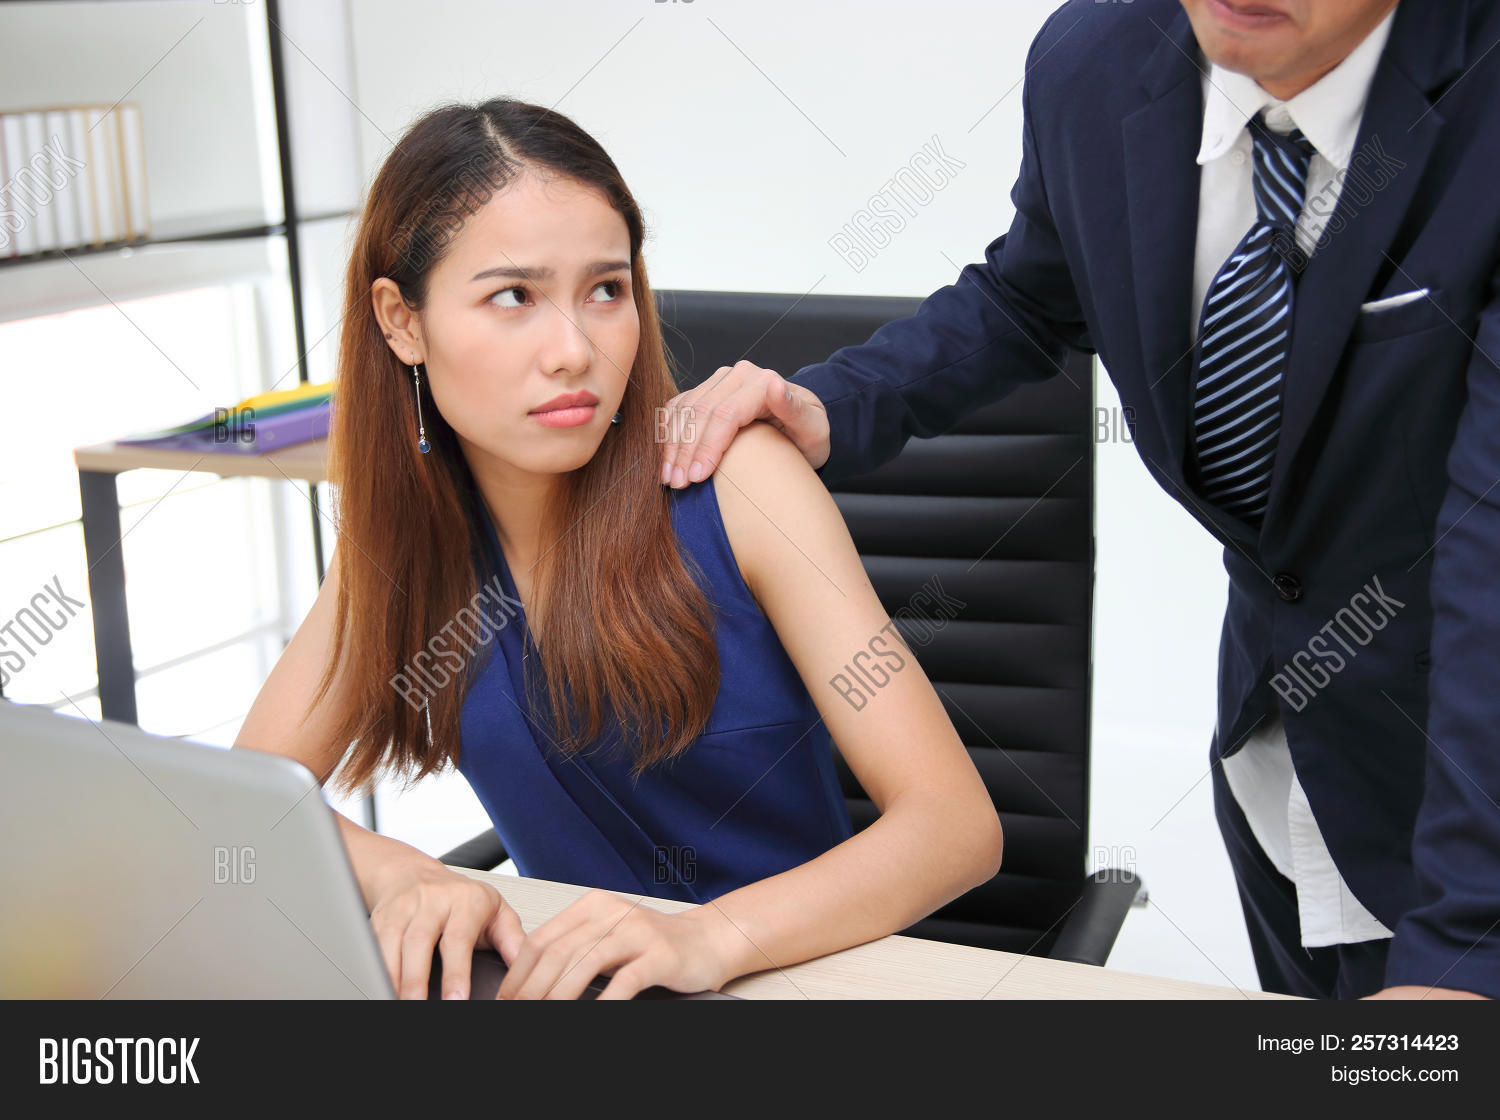 Angry Unhappy Asian Secretary Woman Looking Hand's Boss Touching Her  Shoulder In Workplace.